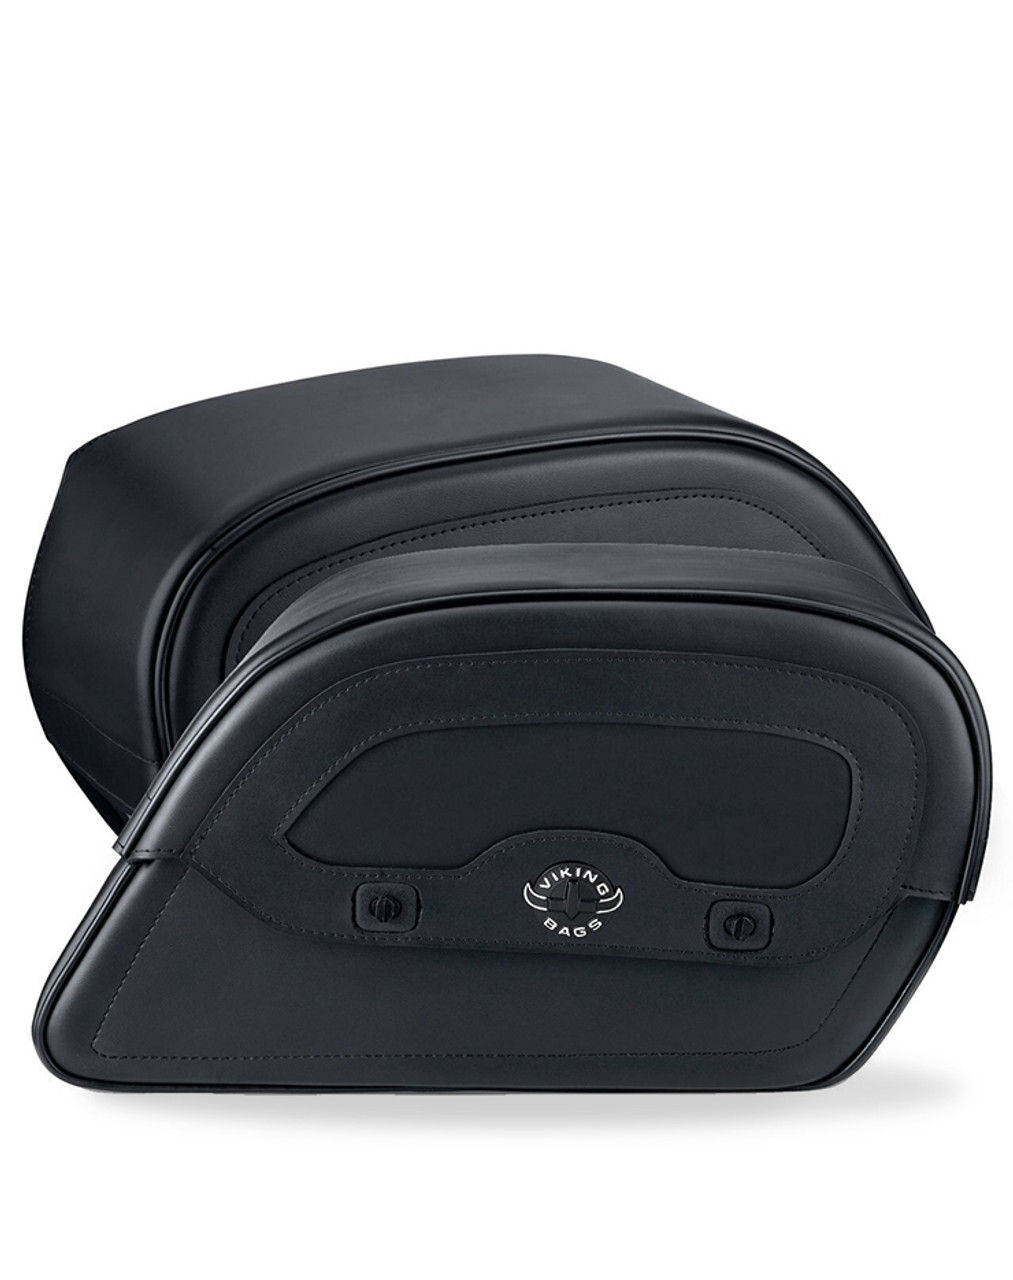 Indian Scout Warrior Slanted Large Motorcycle Saddlebags Both Bags View